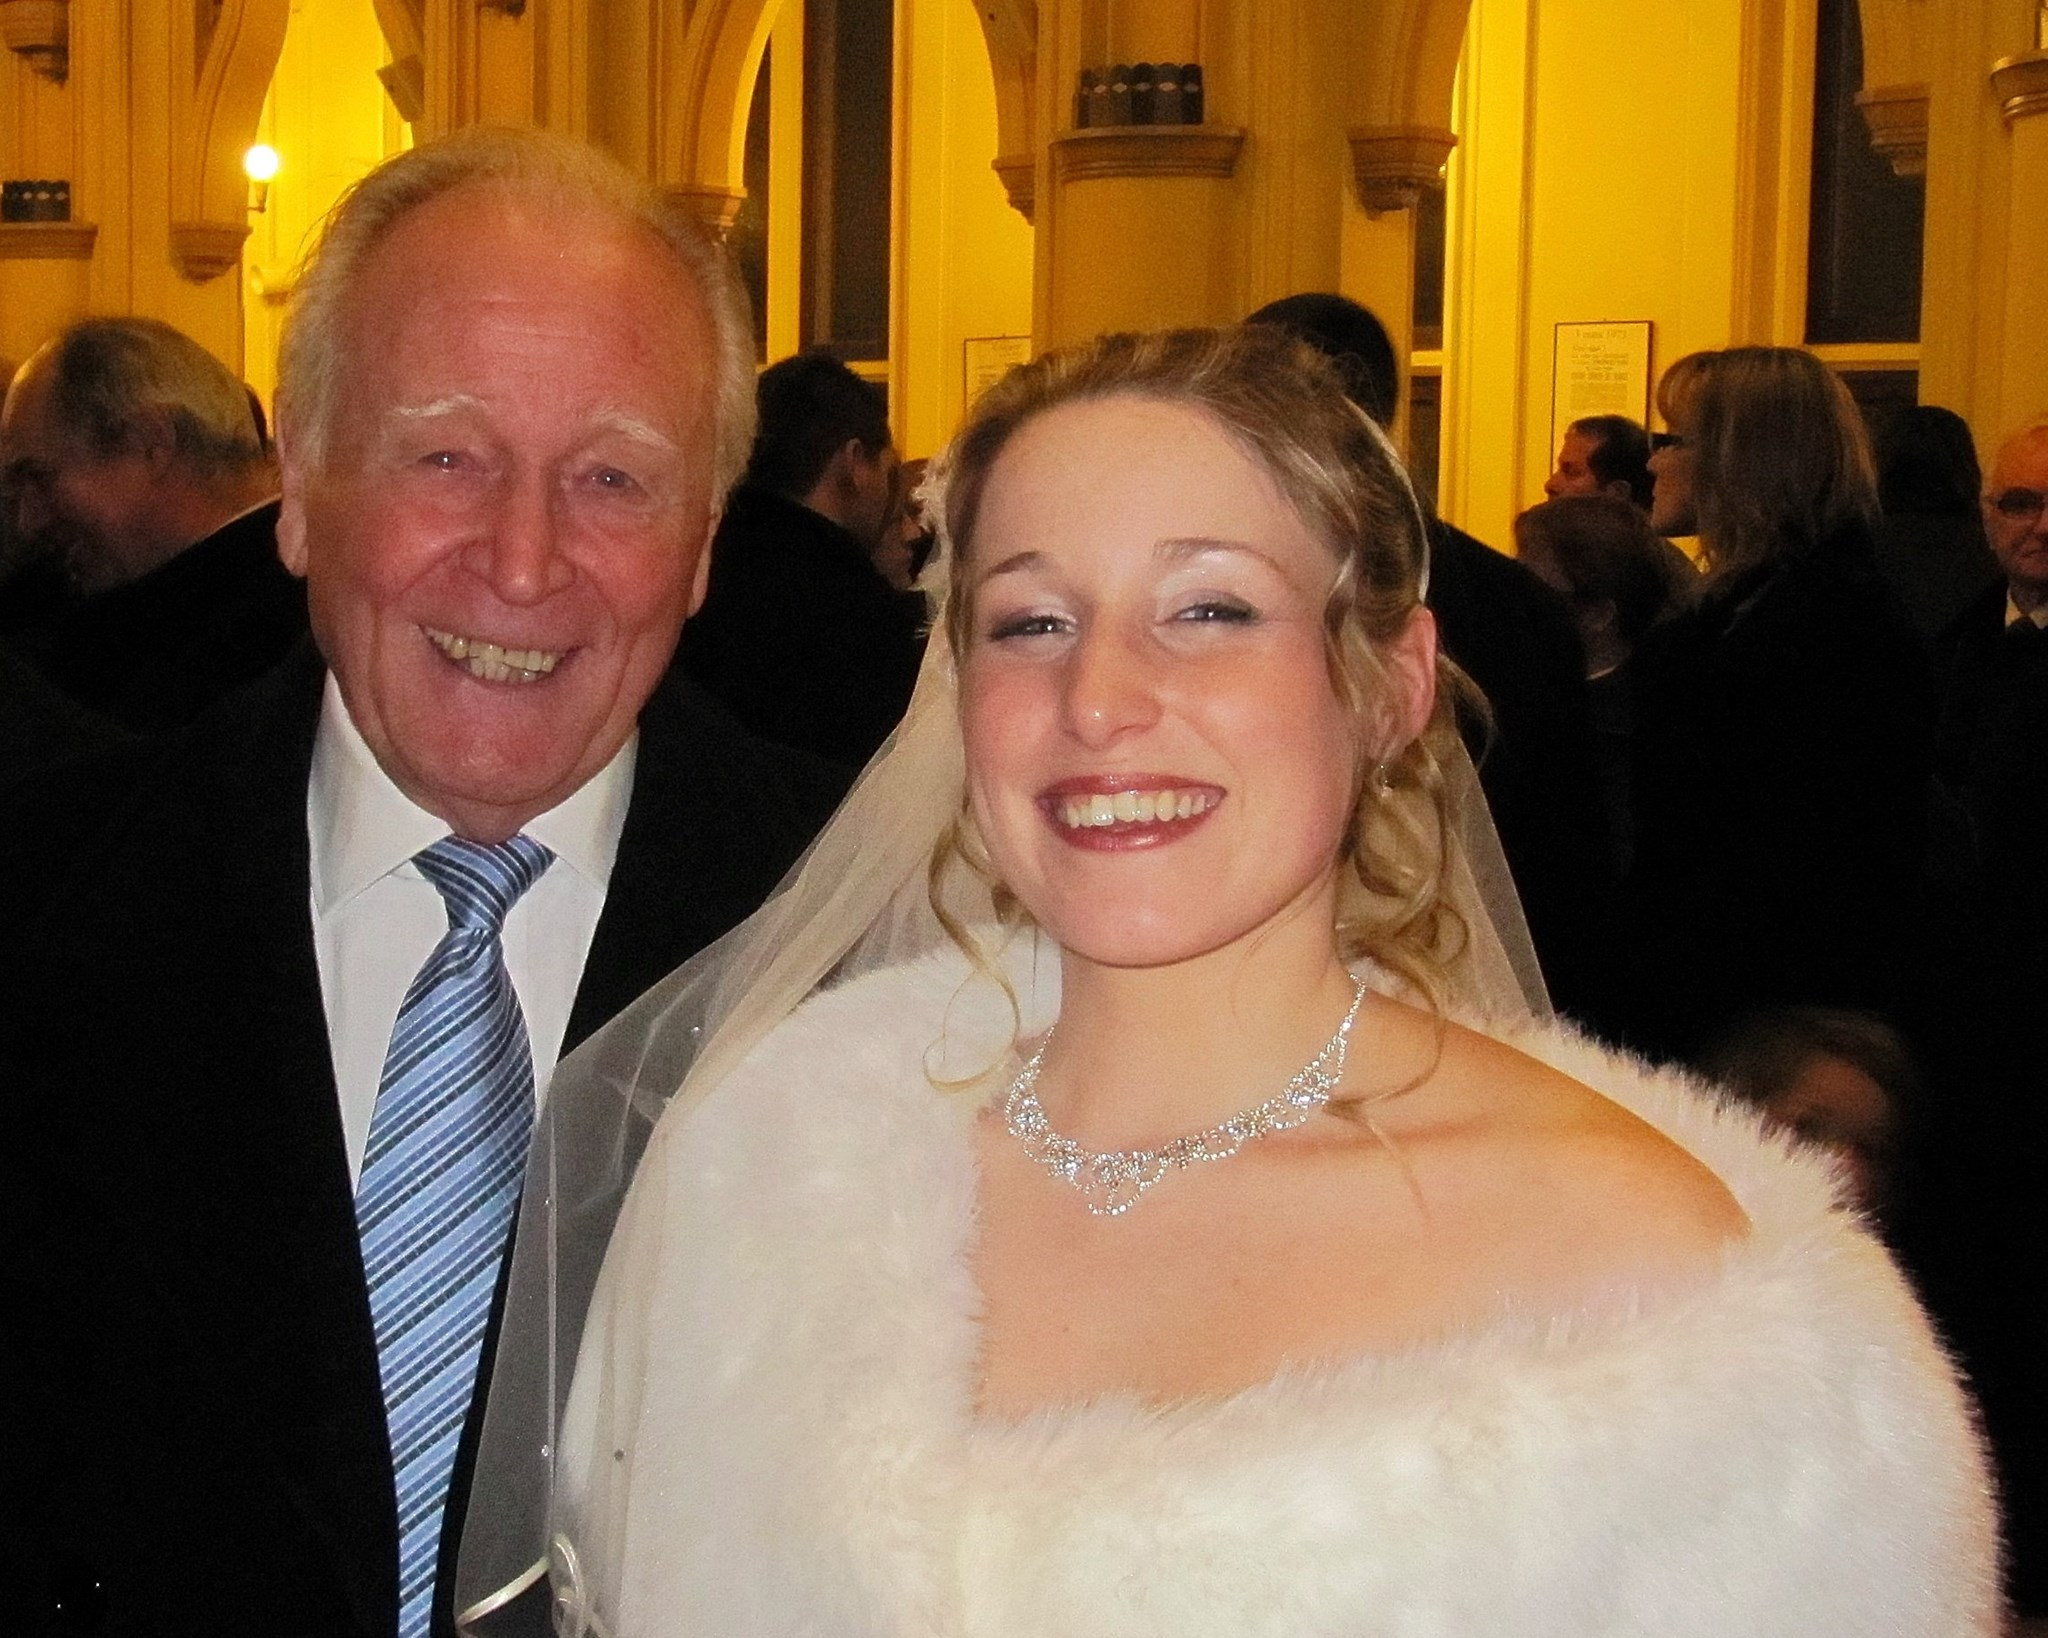 Hughie with Alexandrine at her wedding to David in Le Touquet in January 2011